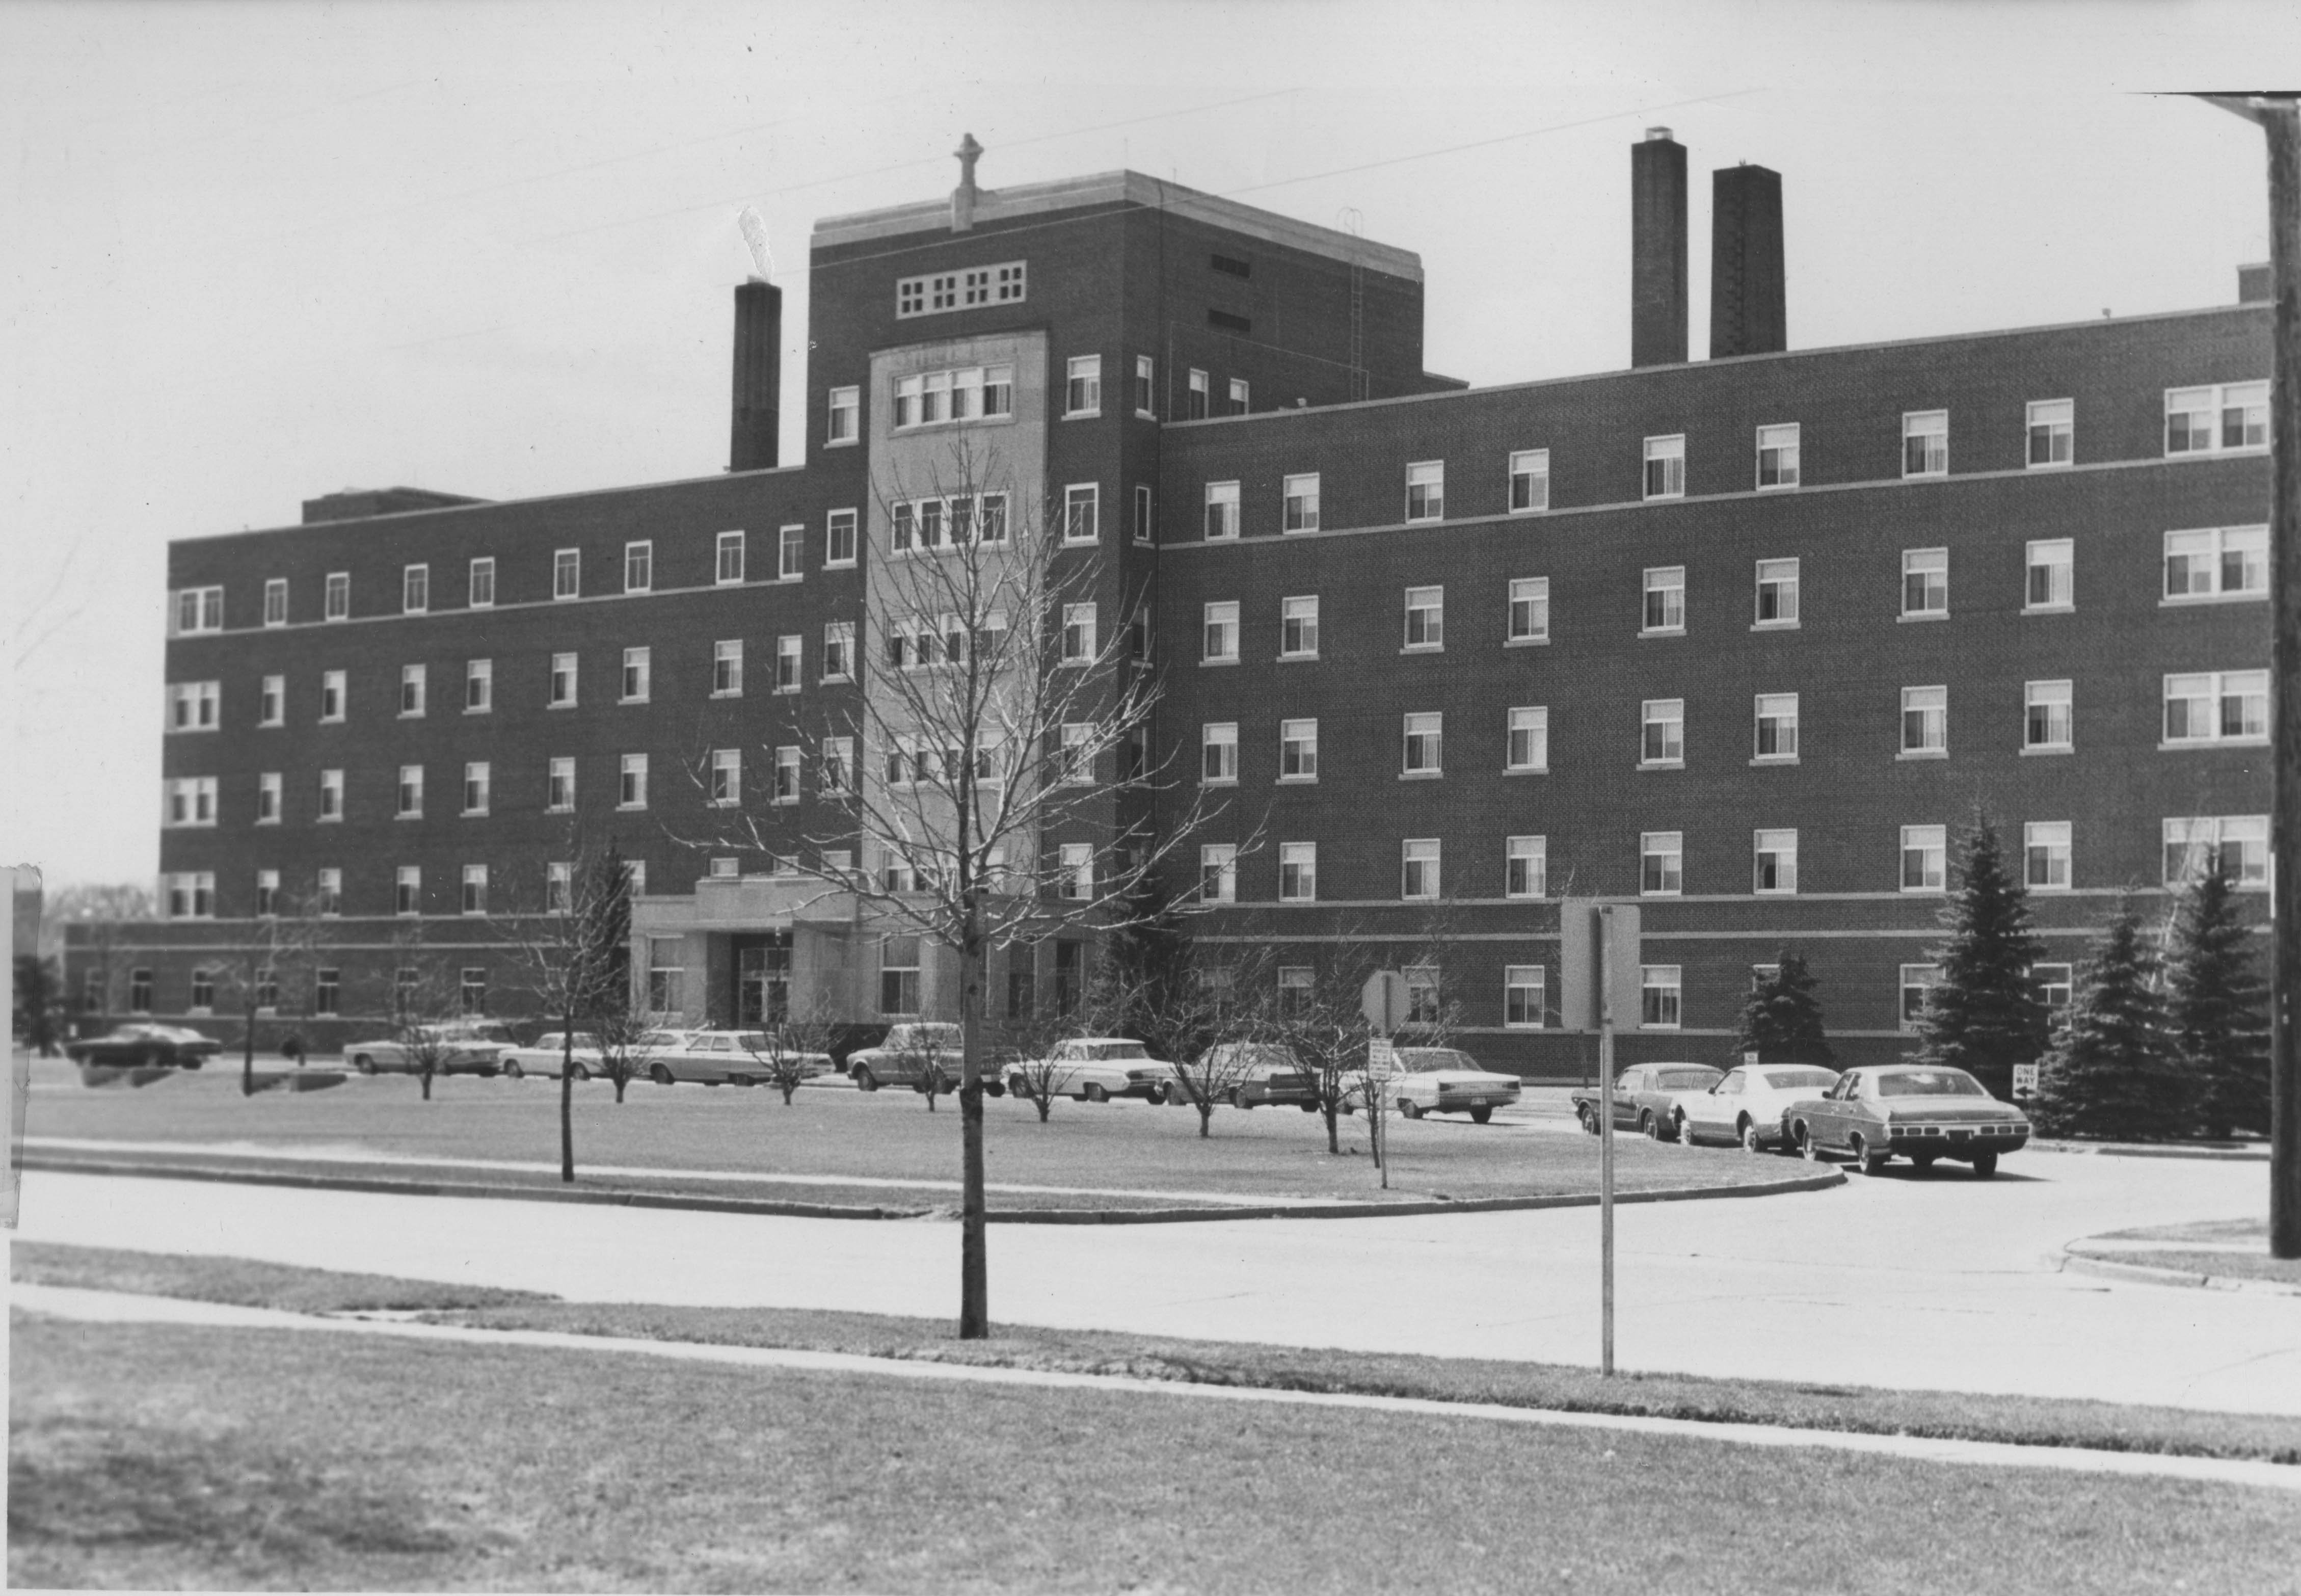 Saint Michael's Hospital in 1980